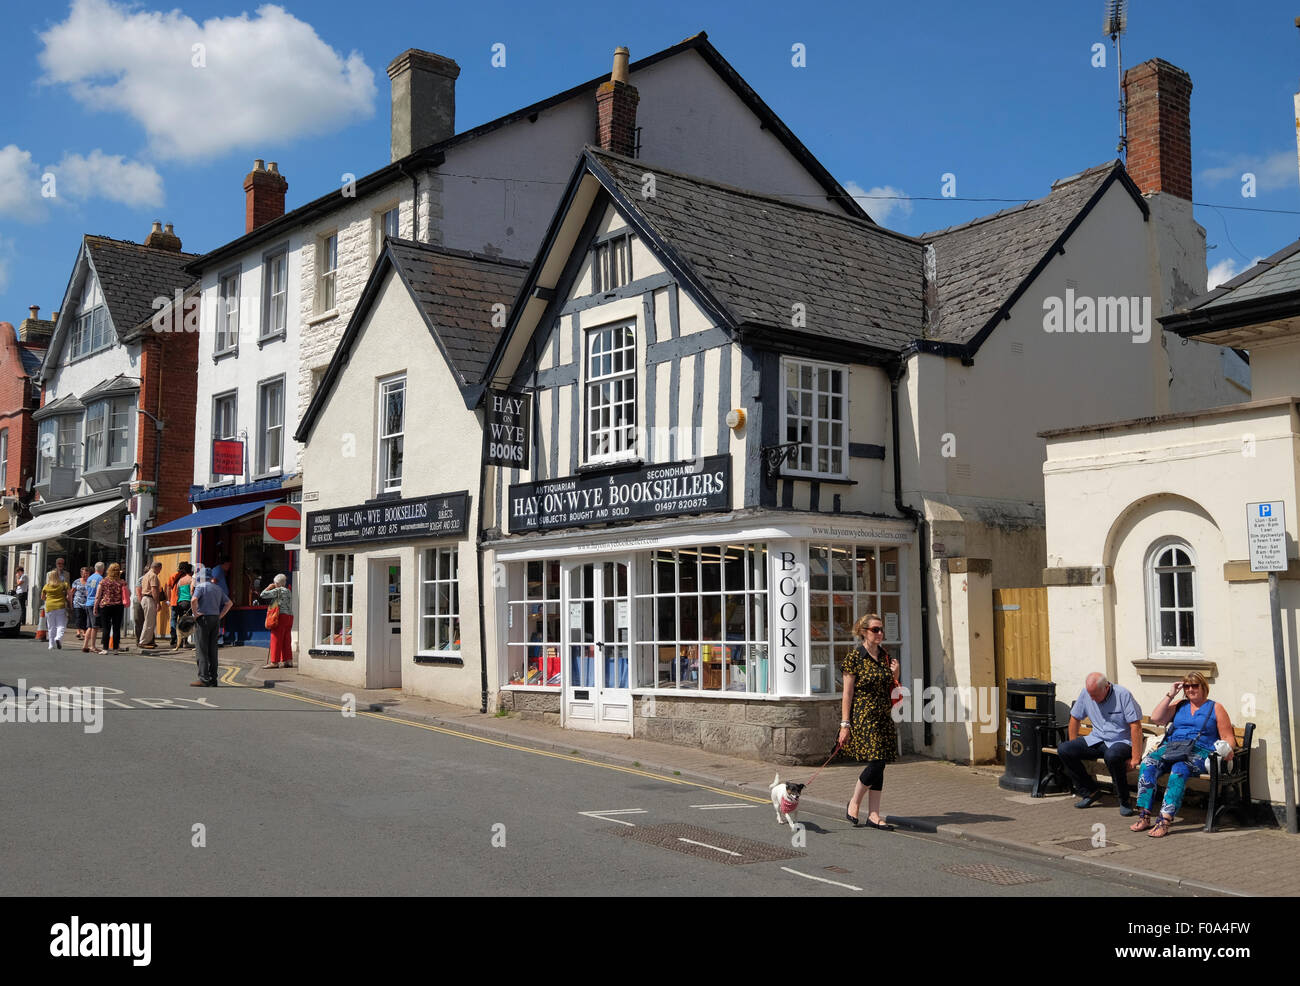 High Town street in the booktown of Hay-on-Wye Brecknockshire Powys Wales - Stock Image